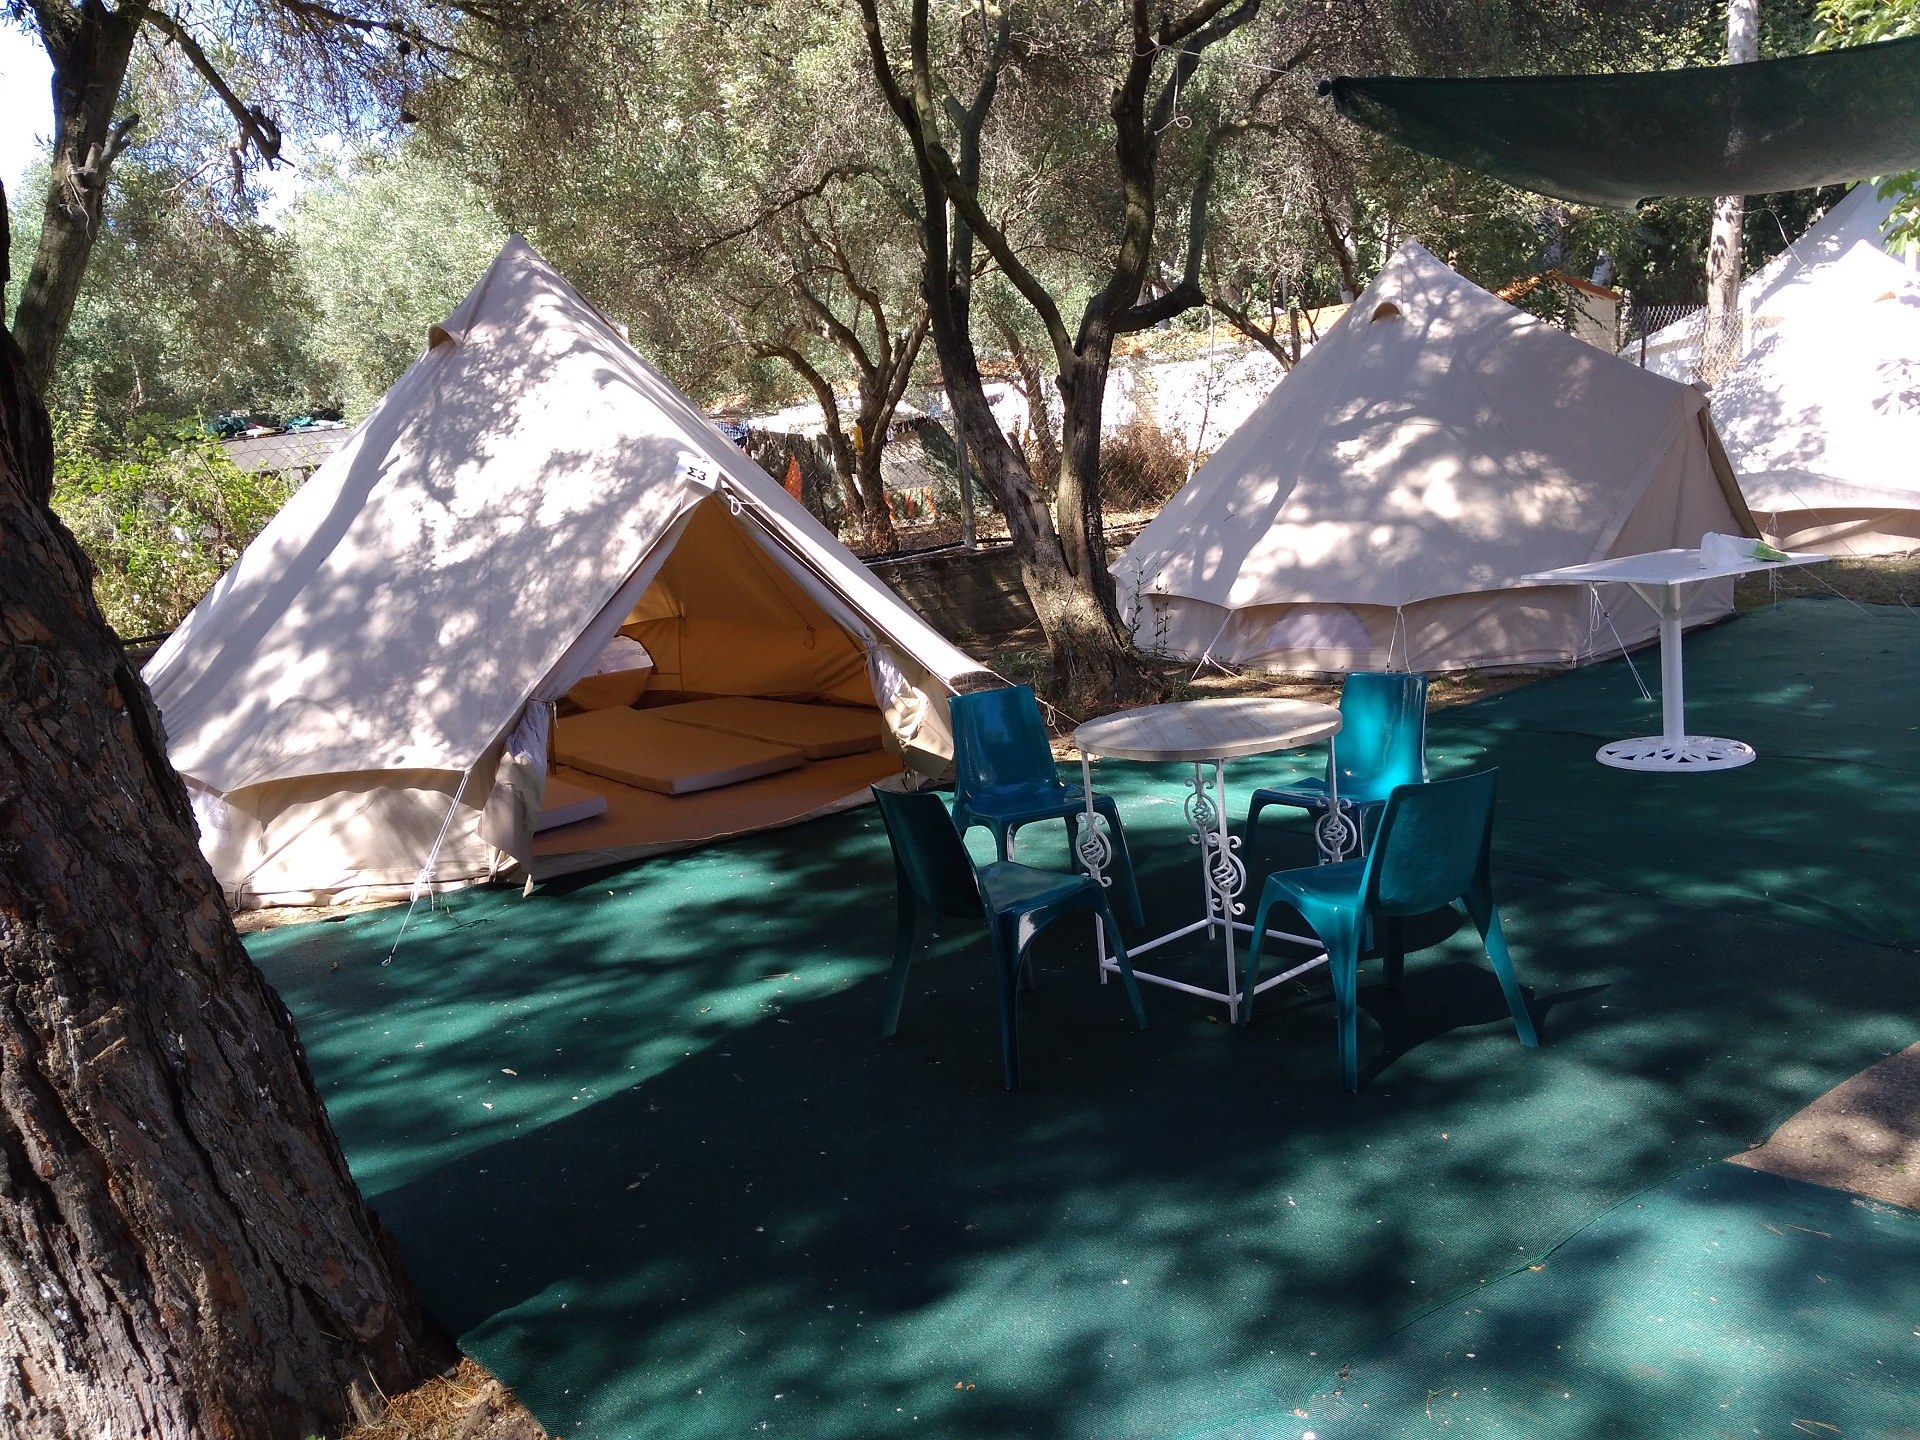 Simple Tents of 4 persons are located approximately 1-15min. far from the beach and consist of & Simple Tents 4 persons - RENTAL ACCOMMODATIONS -Thalatta kalamitsi ...